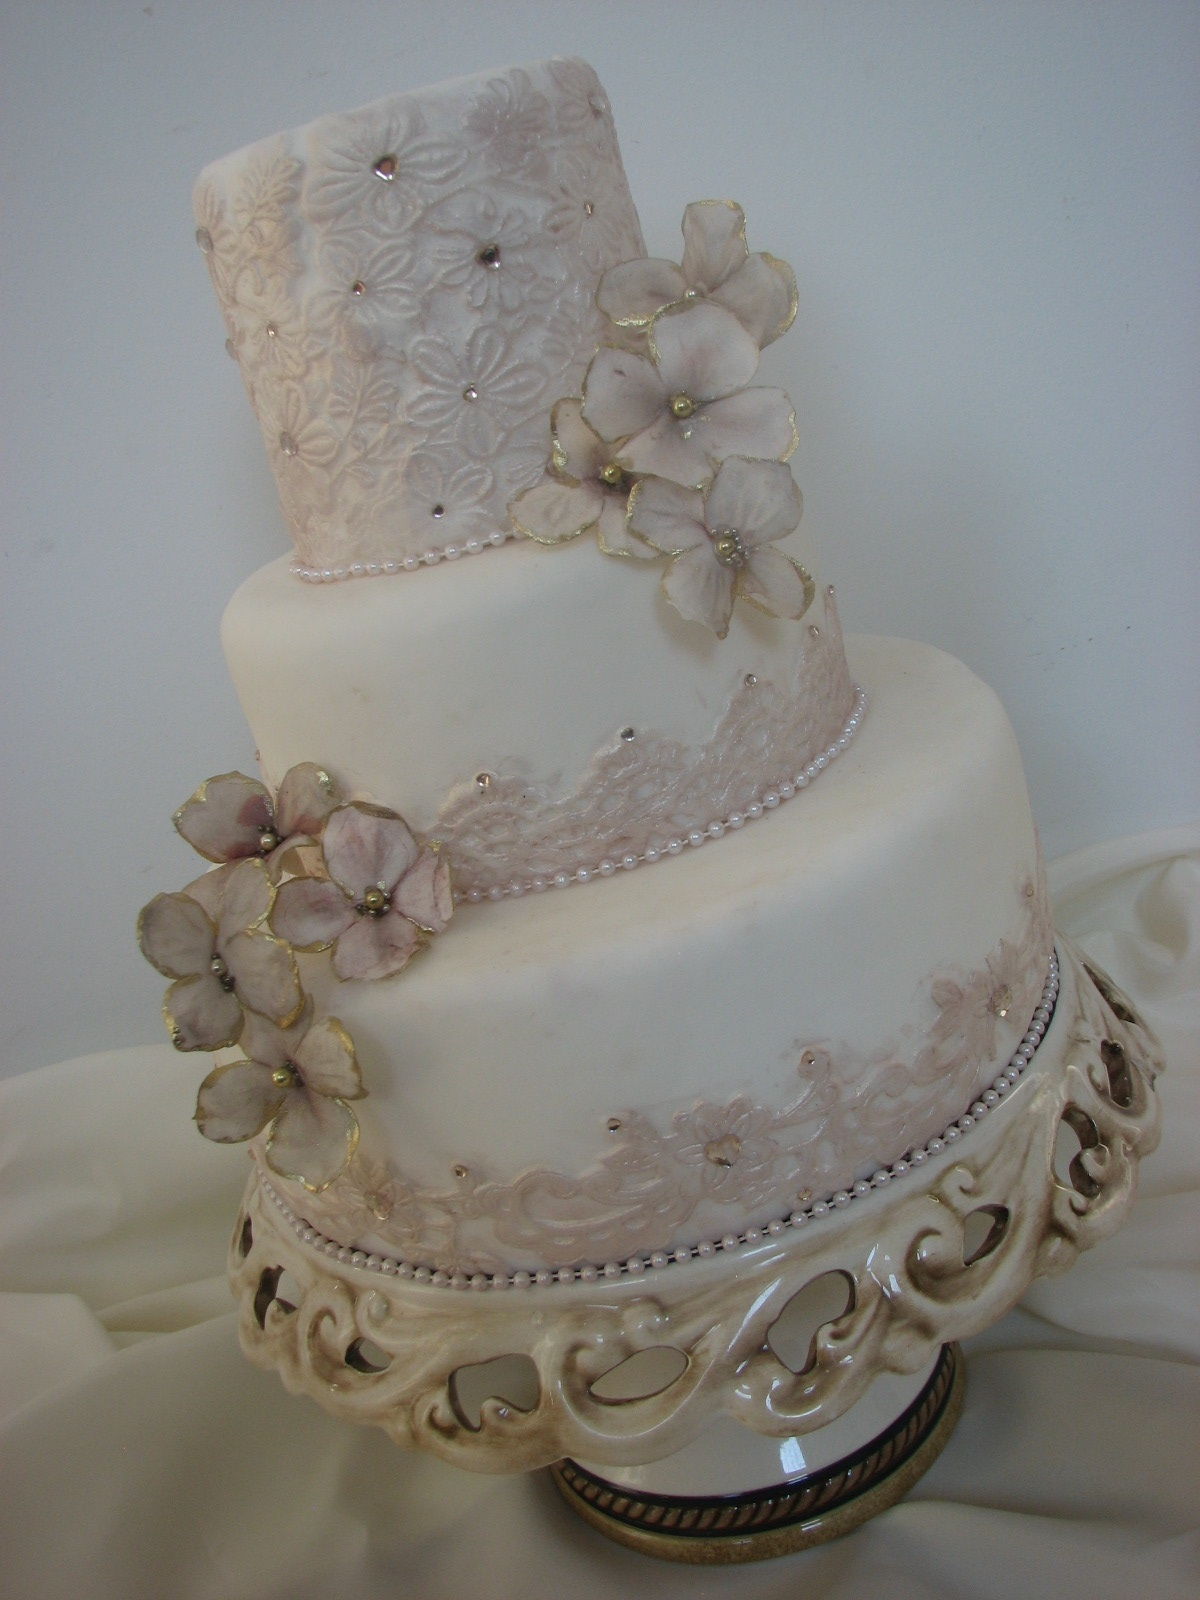 Maggiean Elegant And Tasteful Wedding Cake With Elements Of Fondant Lace Gumpaste Blossoms And